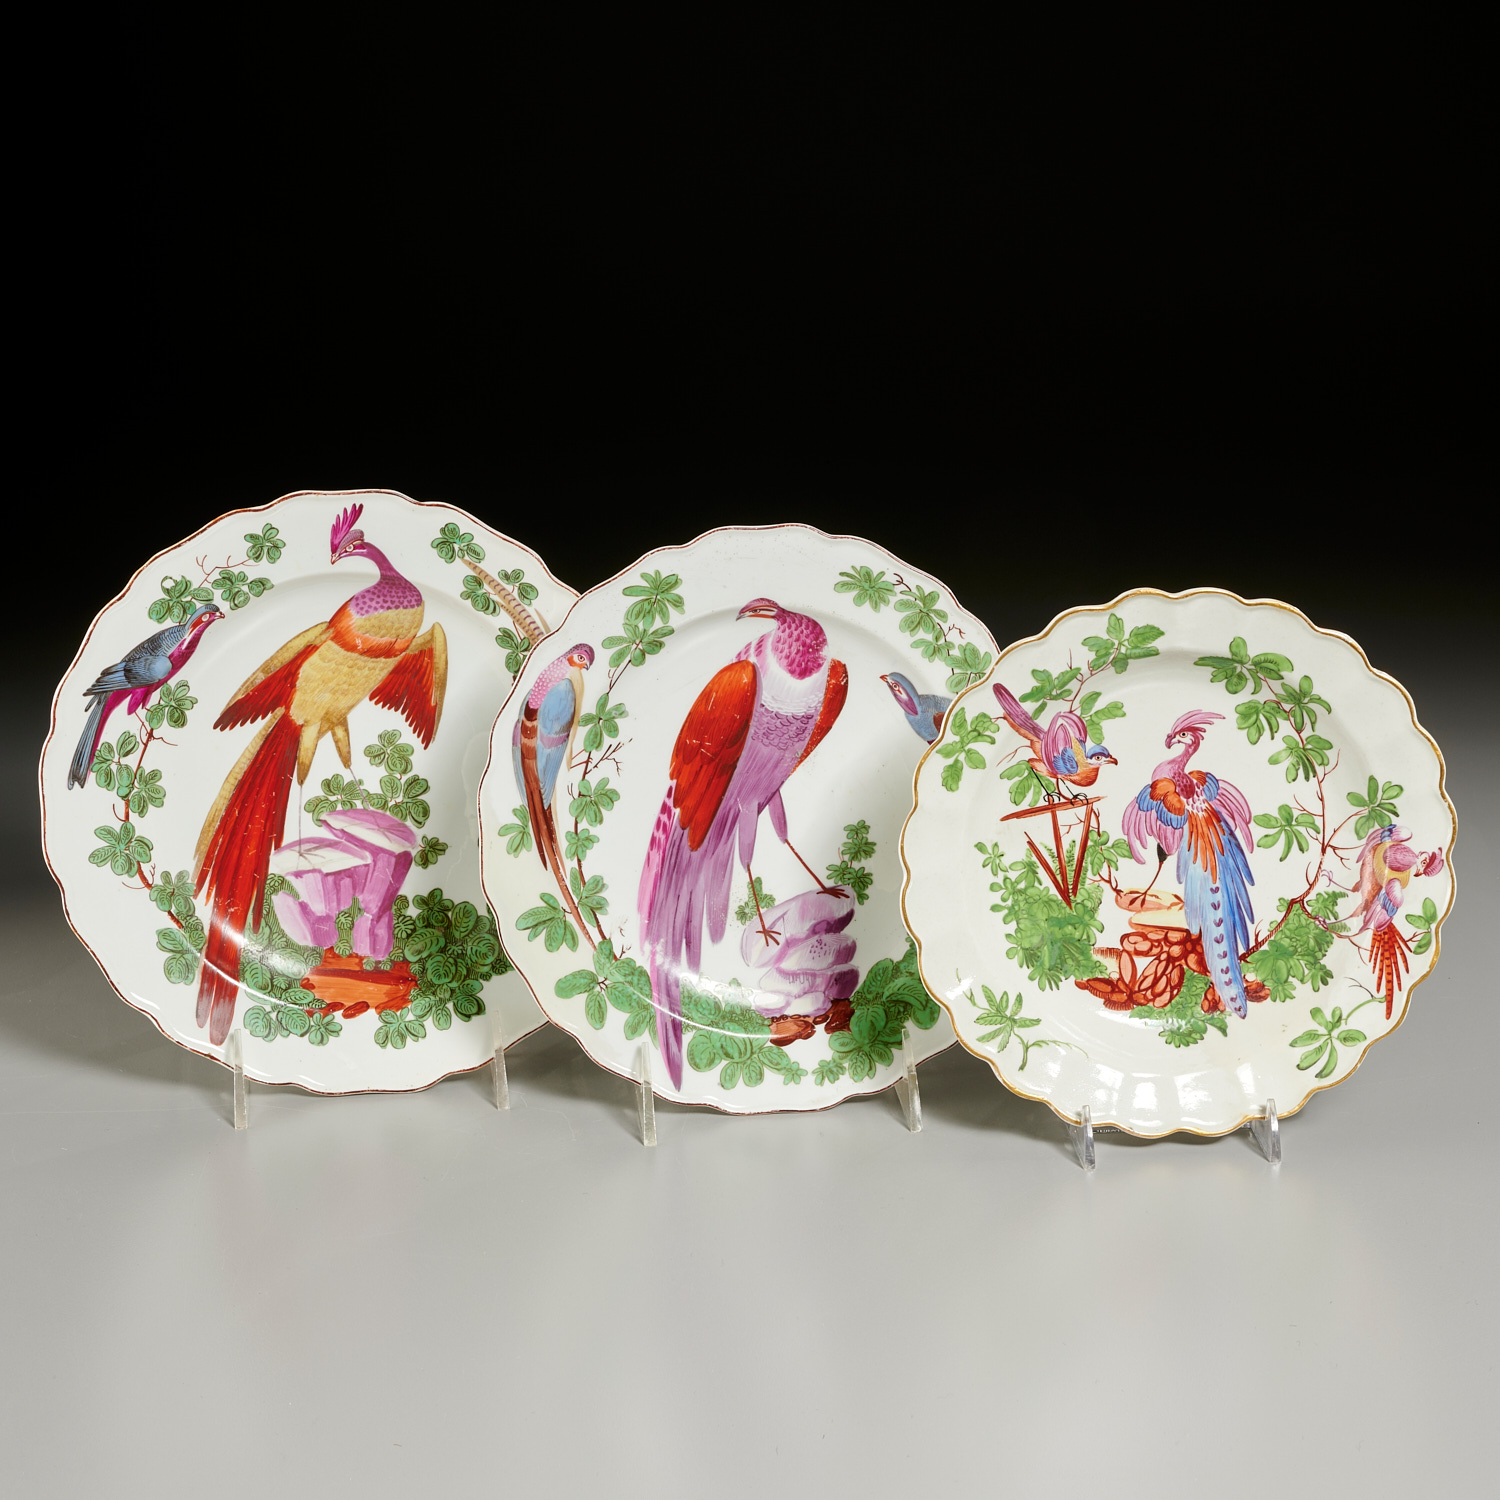 Lot 18 - (3) English Bow or Chelsea Porcelain Dishes